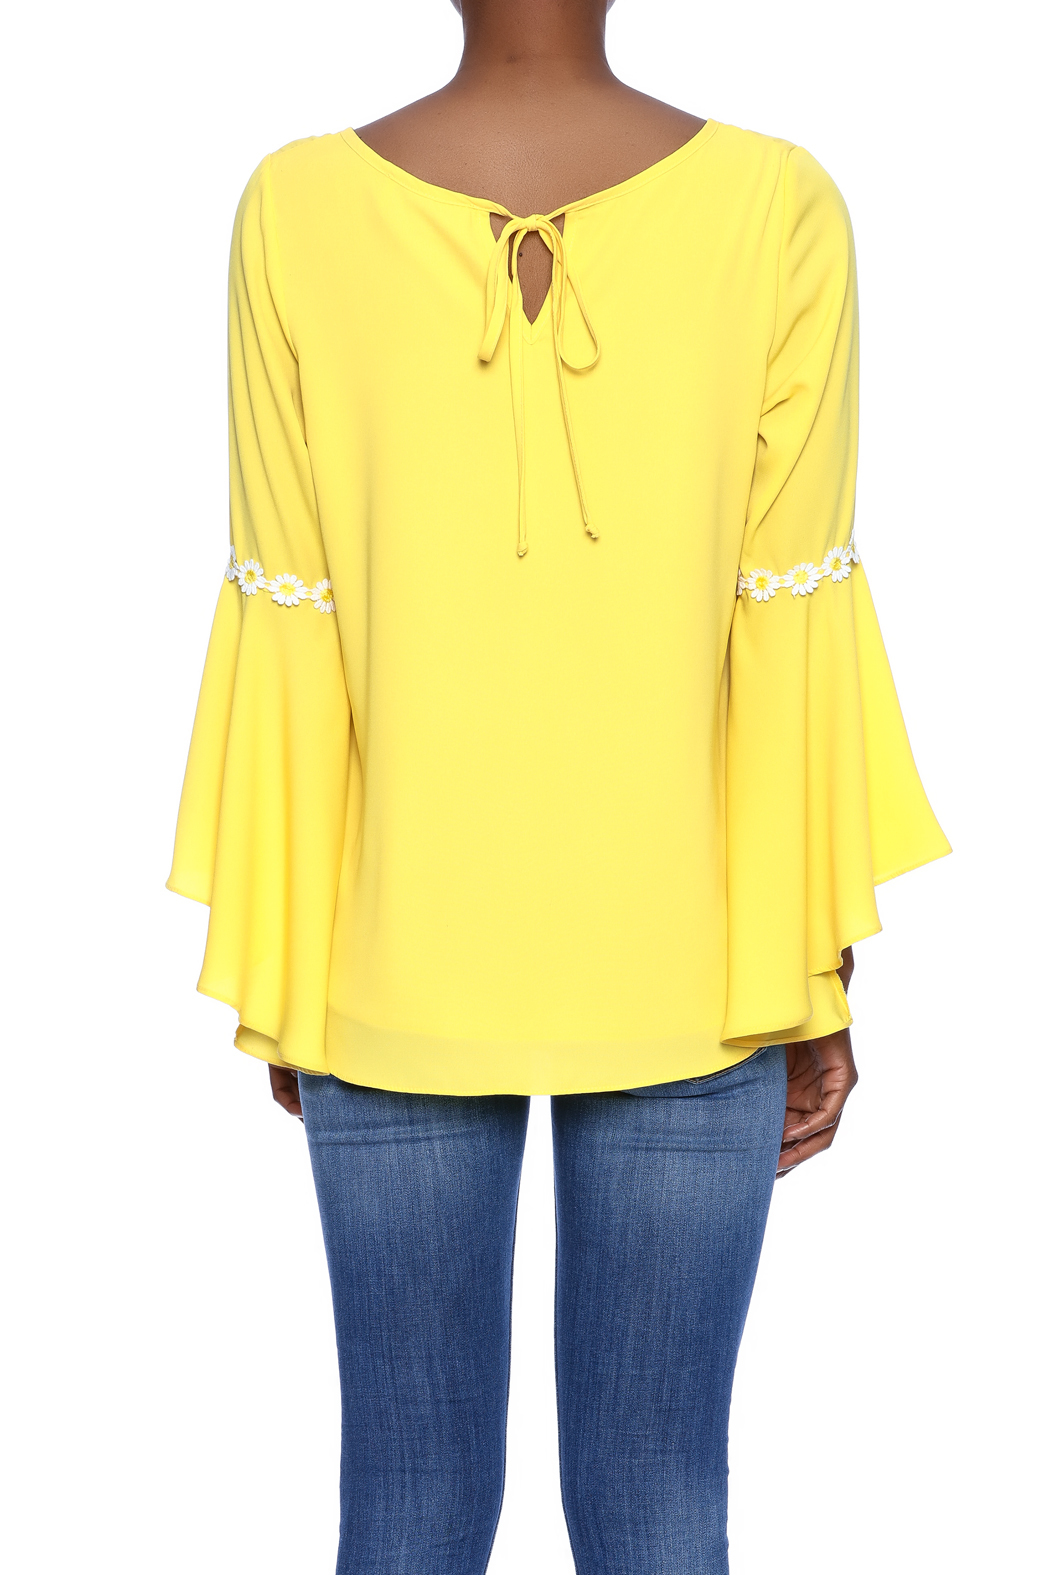 VaVa Yellow Blouse - Back Cropped Image